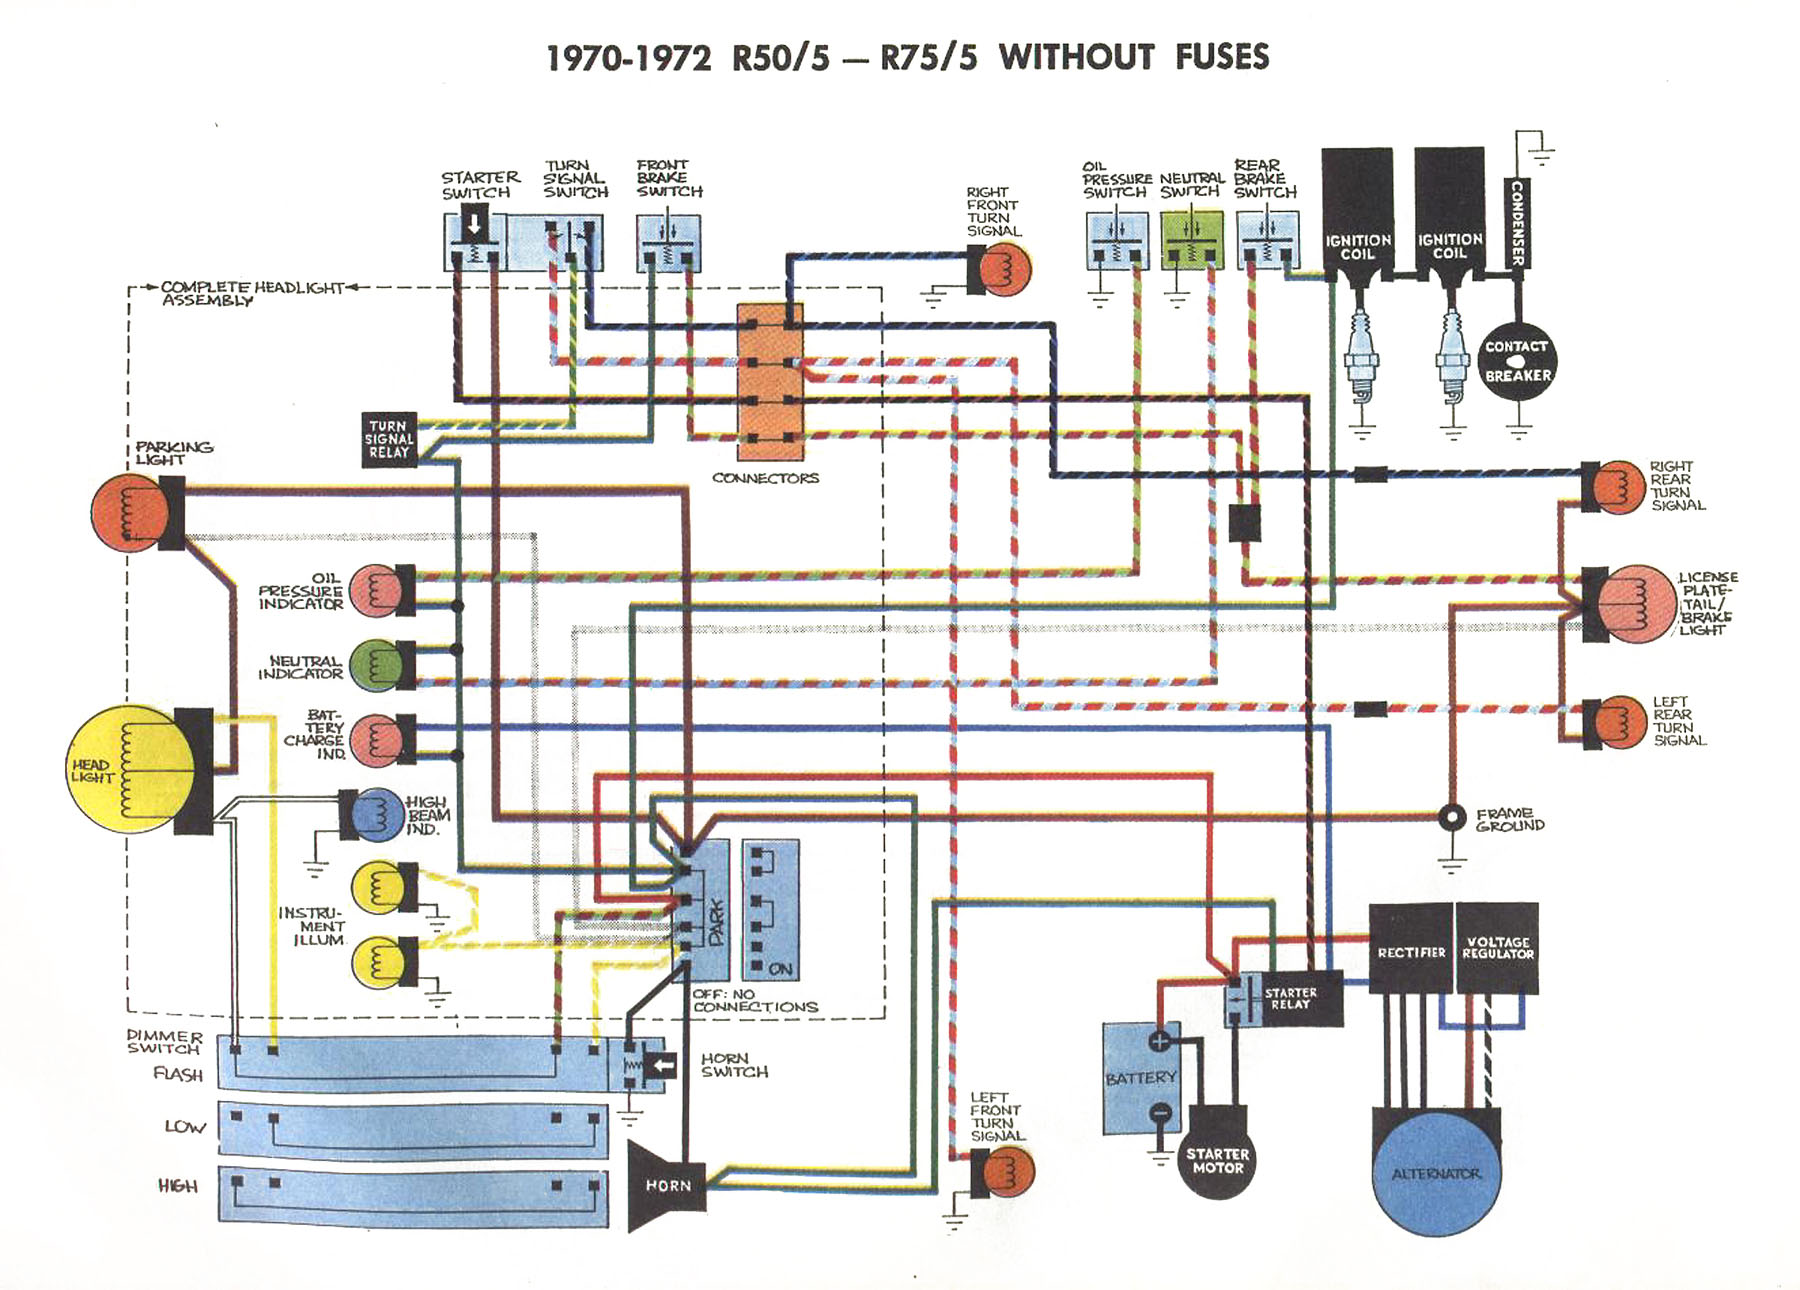 5_unfused_schematic?resize=665%2C477 1974 yamaha xs650 wiring diagram wiring diagram XS2 Bow String at edmiracle.co